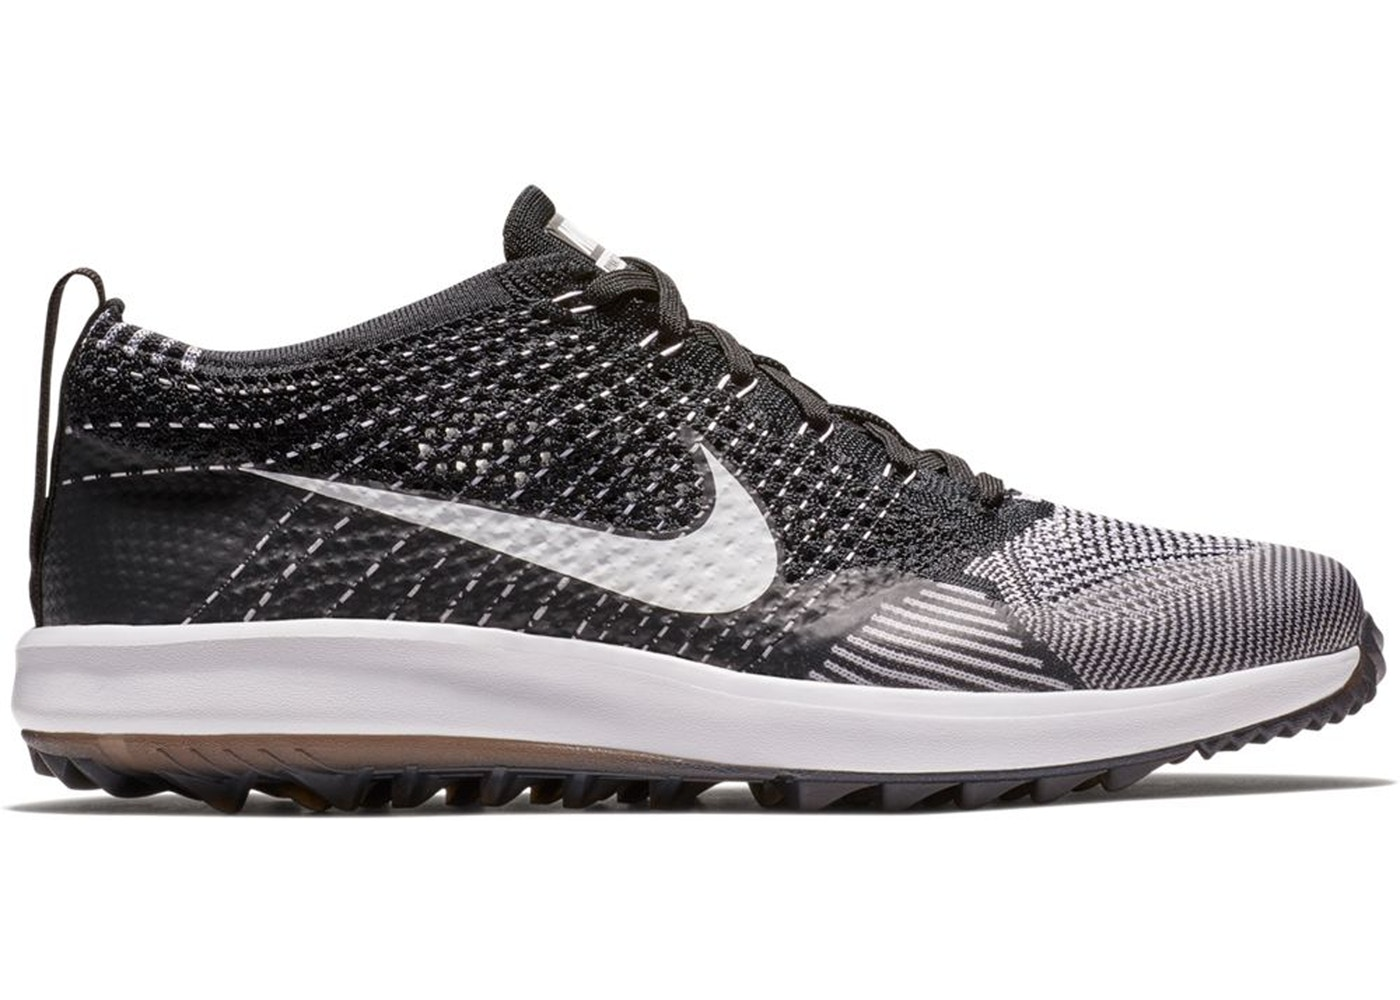 201a447ceb972 Nike Flyknit Racer G Cleat Cookies   Cream - 909756-001